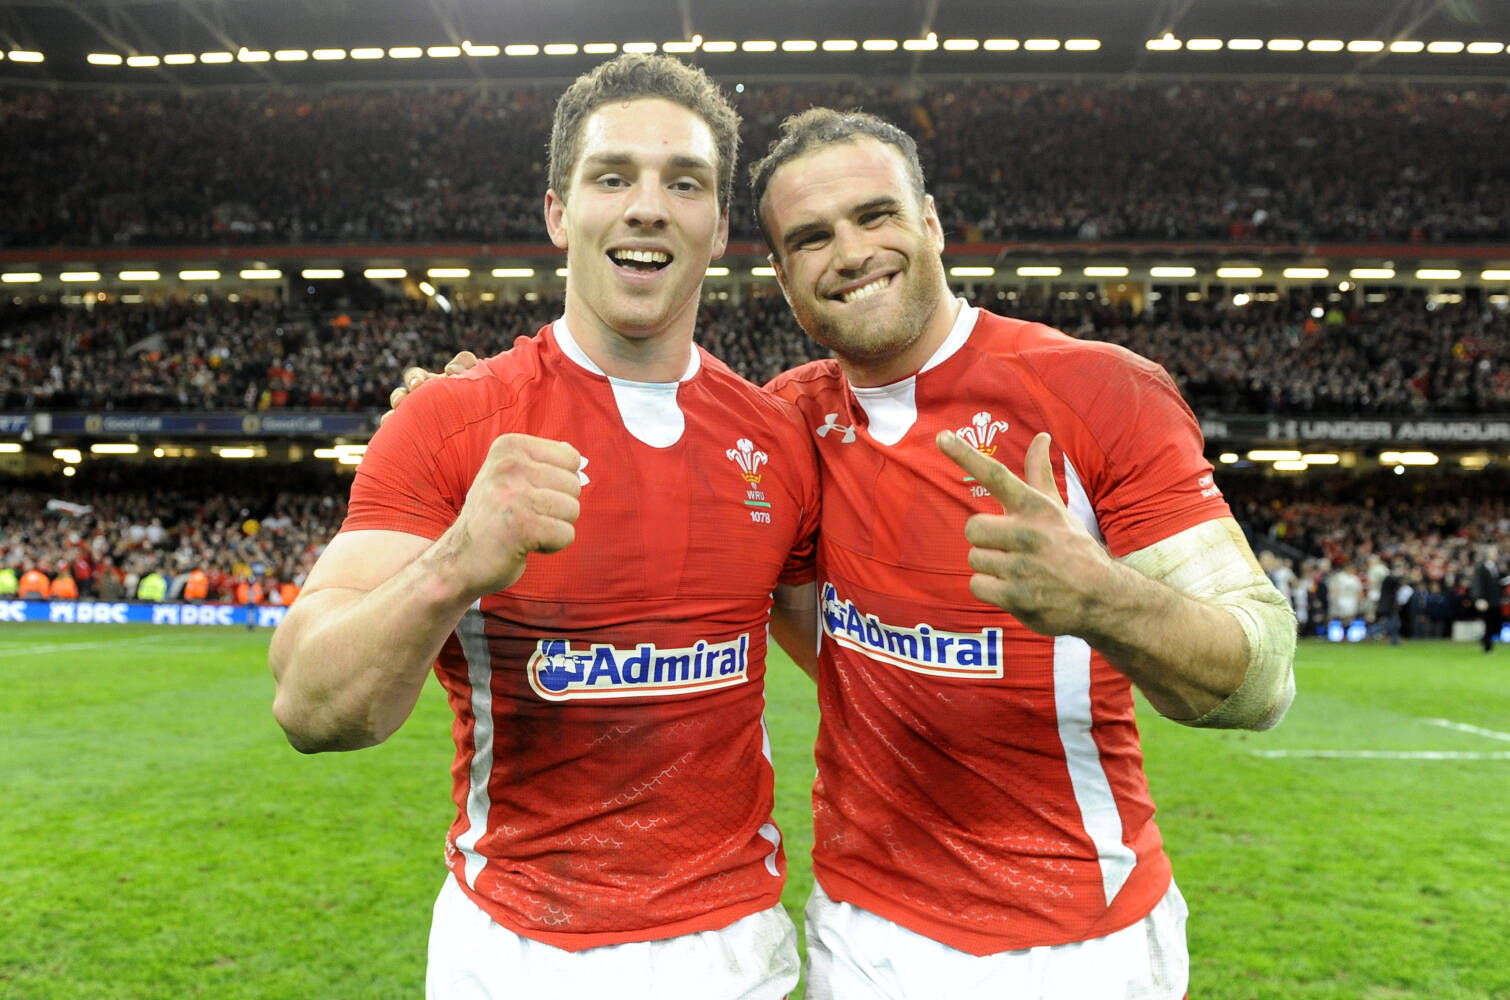 Jamie Roberts joins George North in live commentary for charity